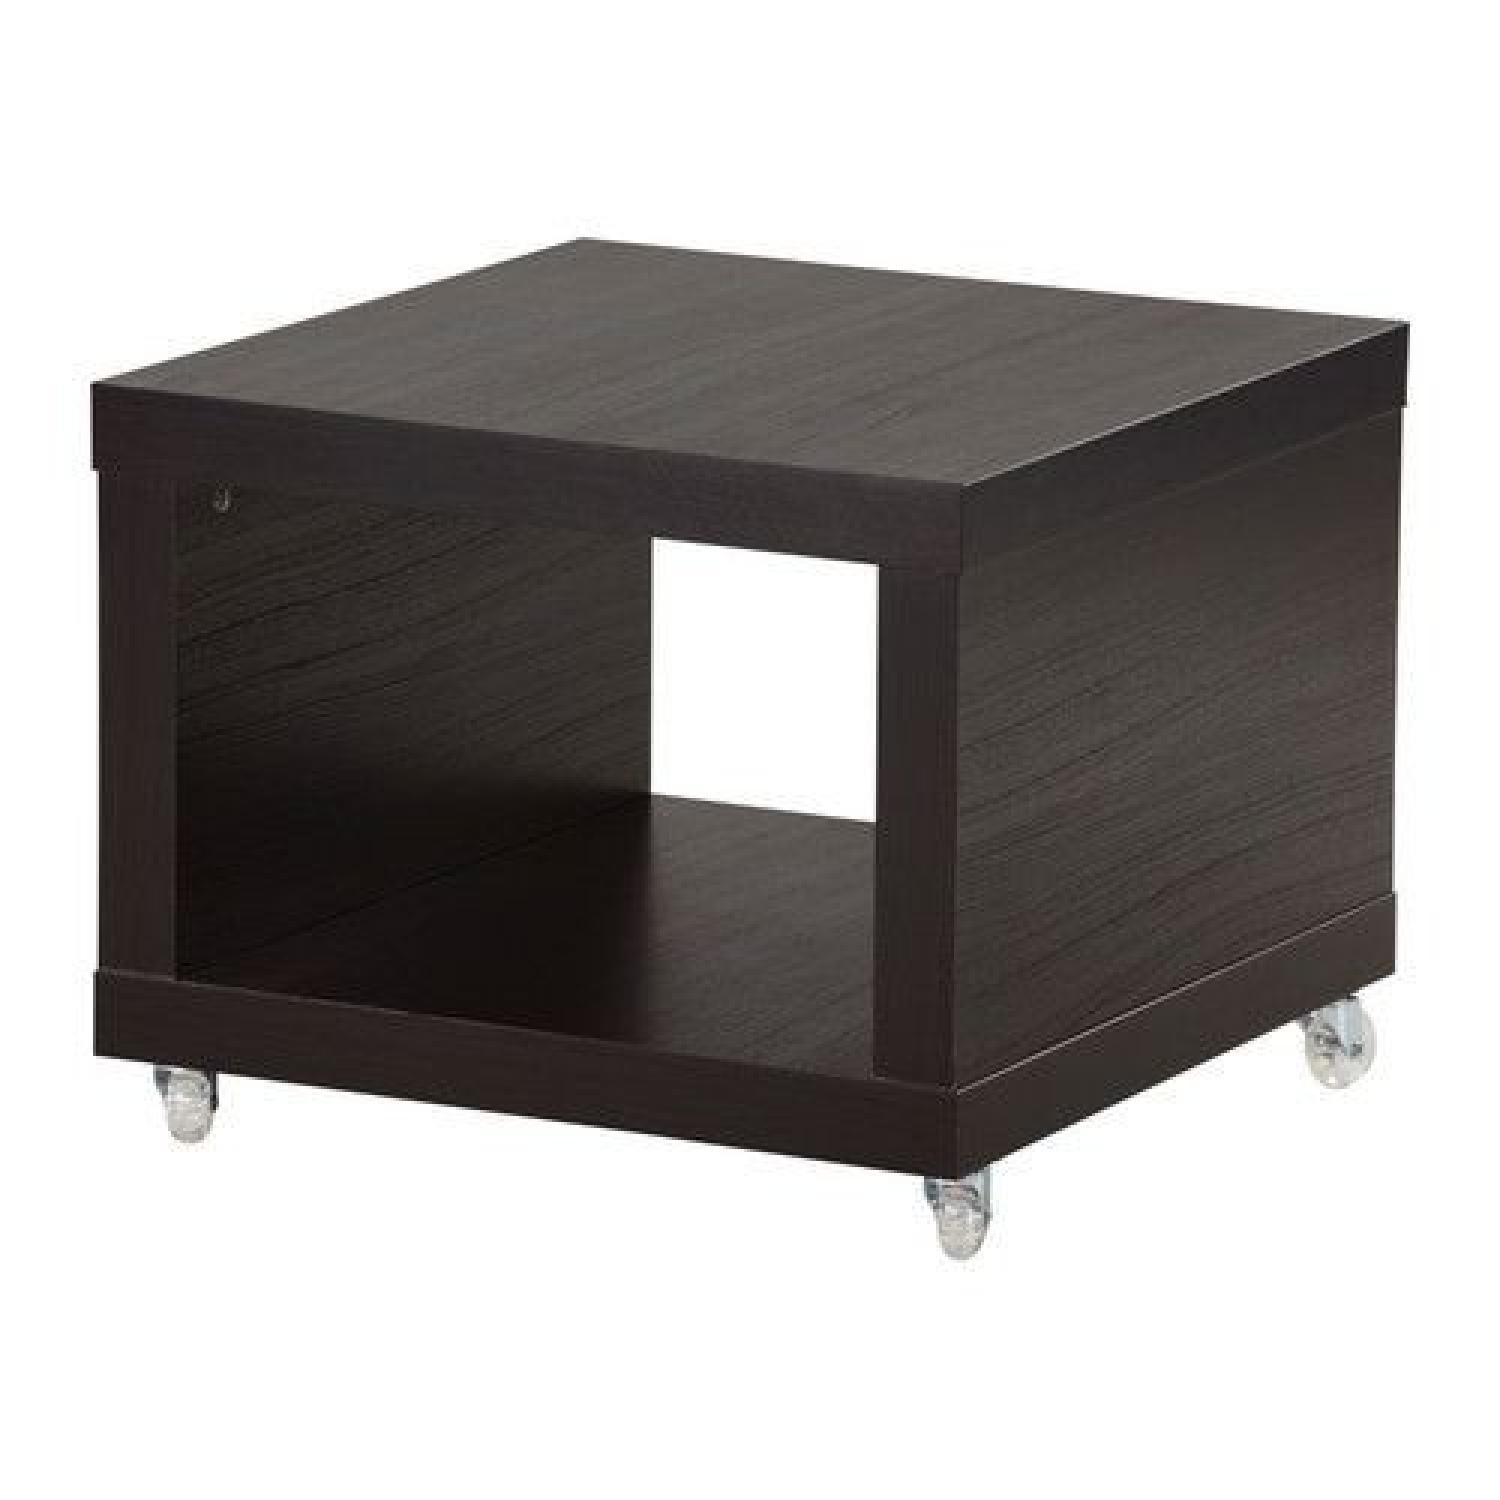 Ordinaire Ikea Lack Coffee/Side Table Multi Use On Casters Black Brown